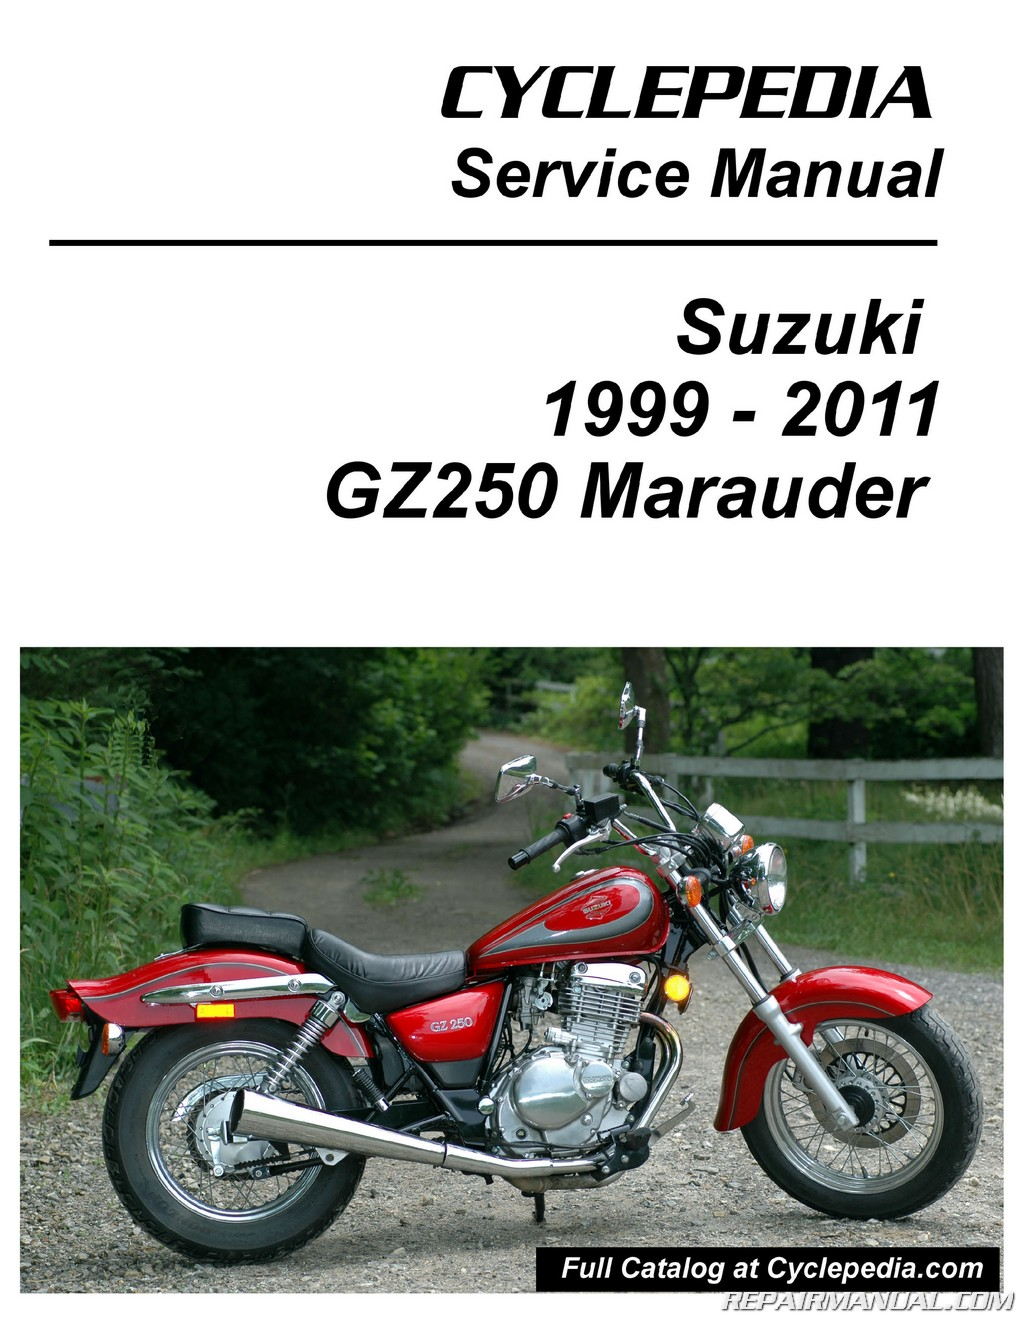 Suzuki GZ250 Marauder Cyclepedia Printed Service Manual